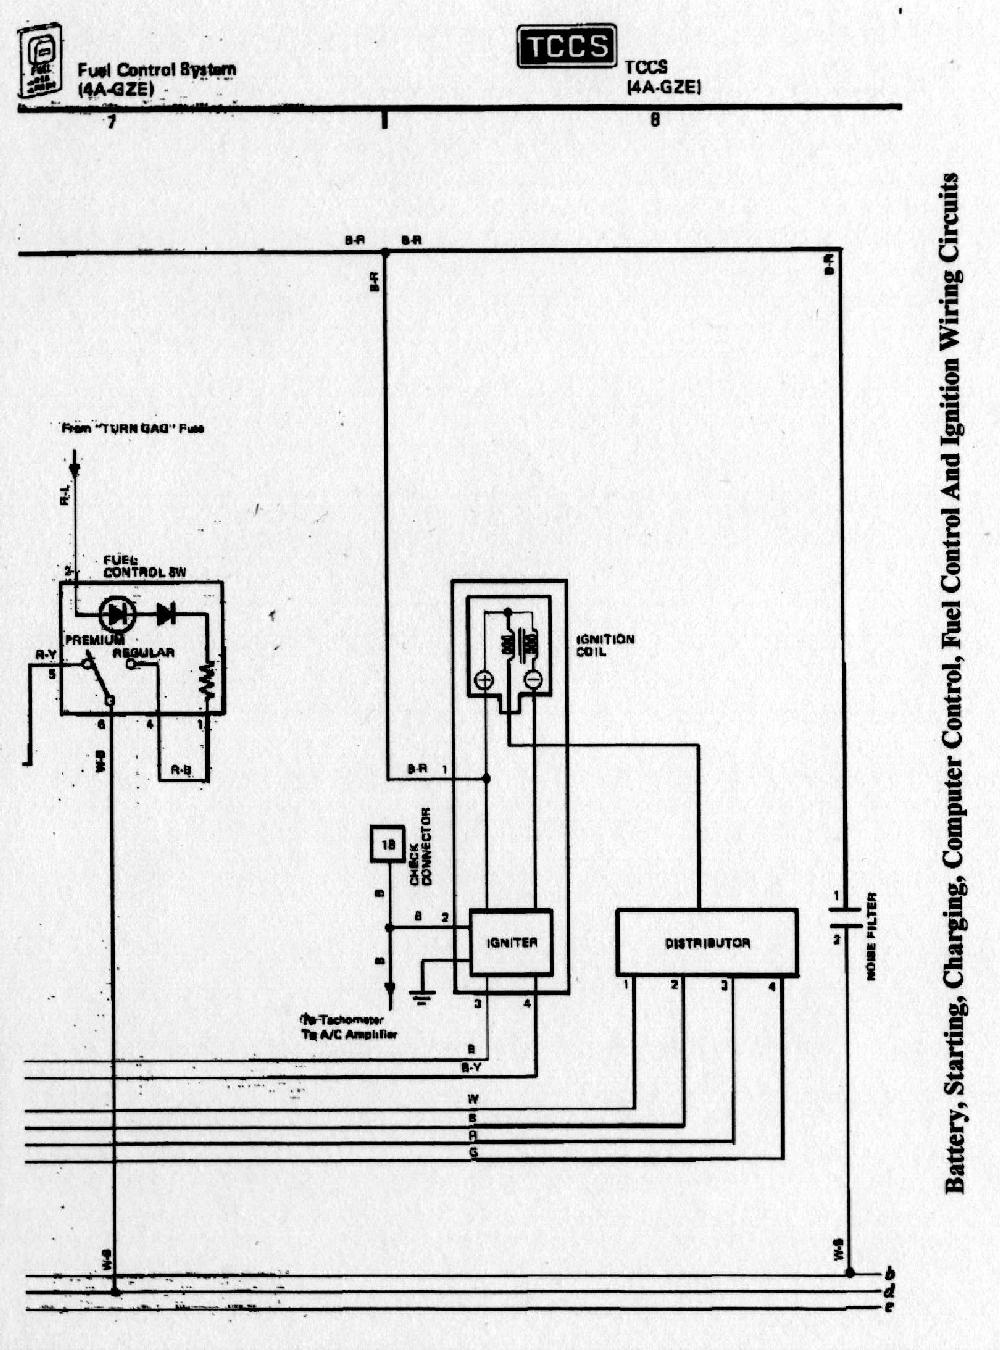 Fuel Injector Wiring Diagram. Wiring. Wiring Diagram Images